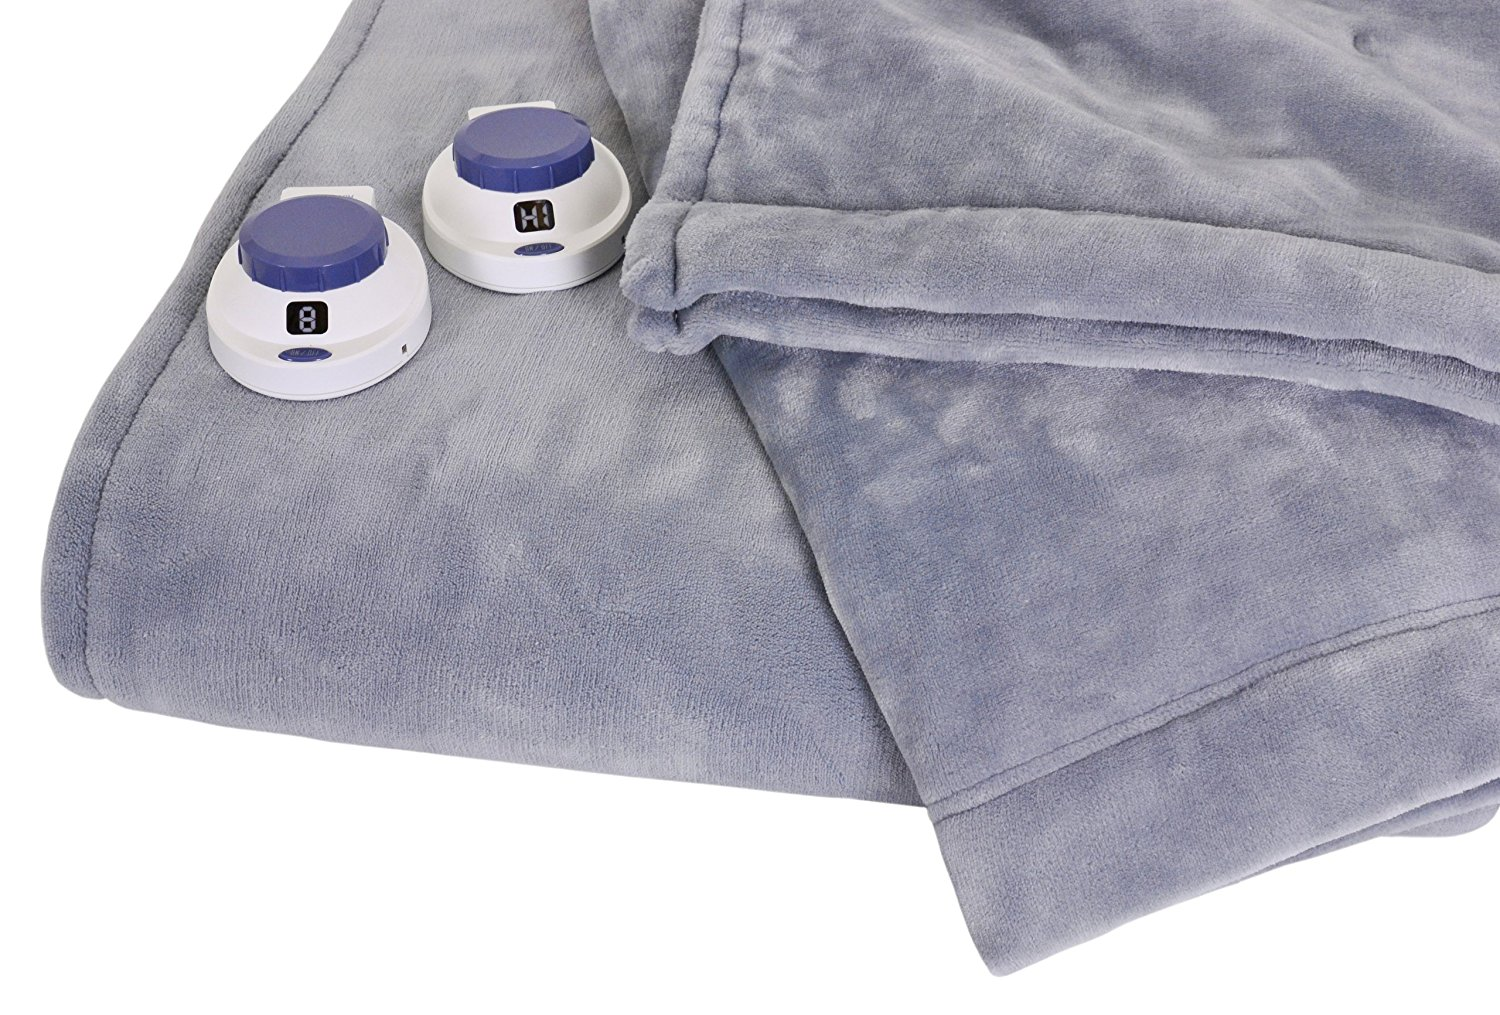 SoftHeat Luxurious Macromink Fleece Low-Voltage Electric Heated Blanket, Queen Size, Blue